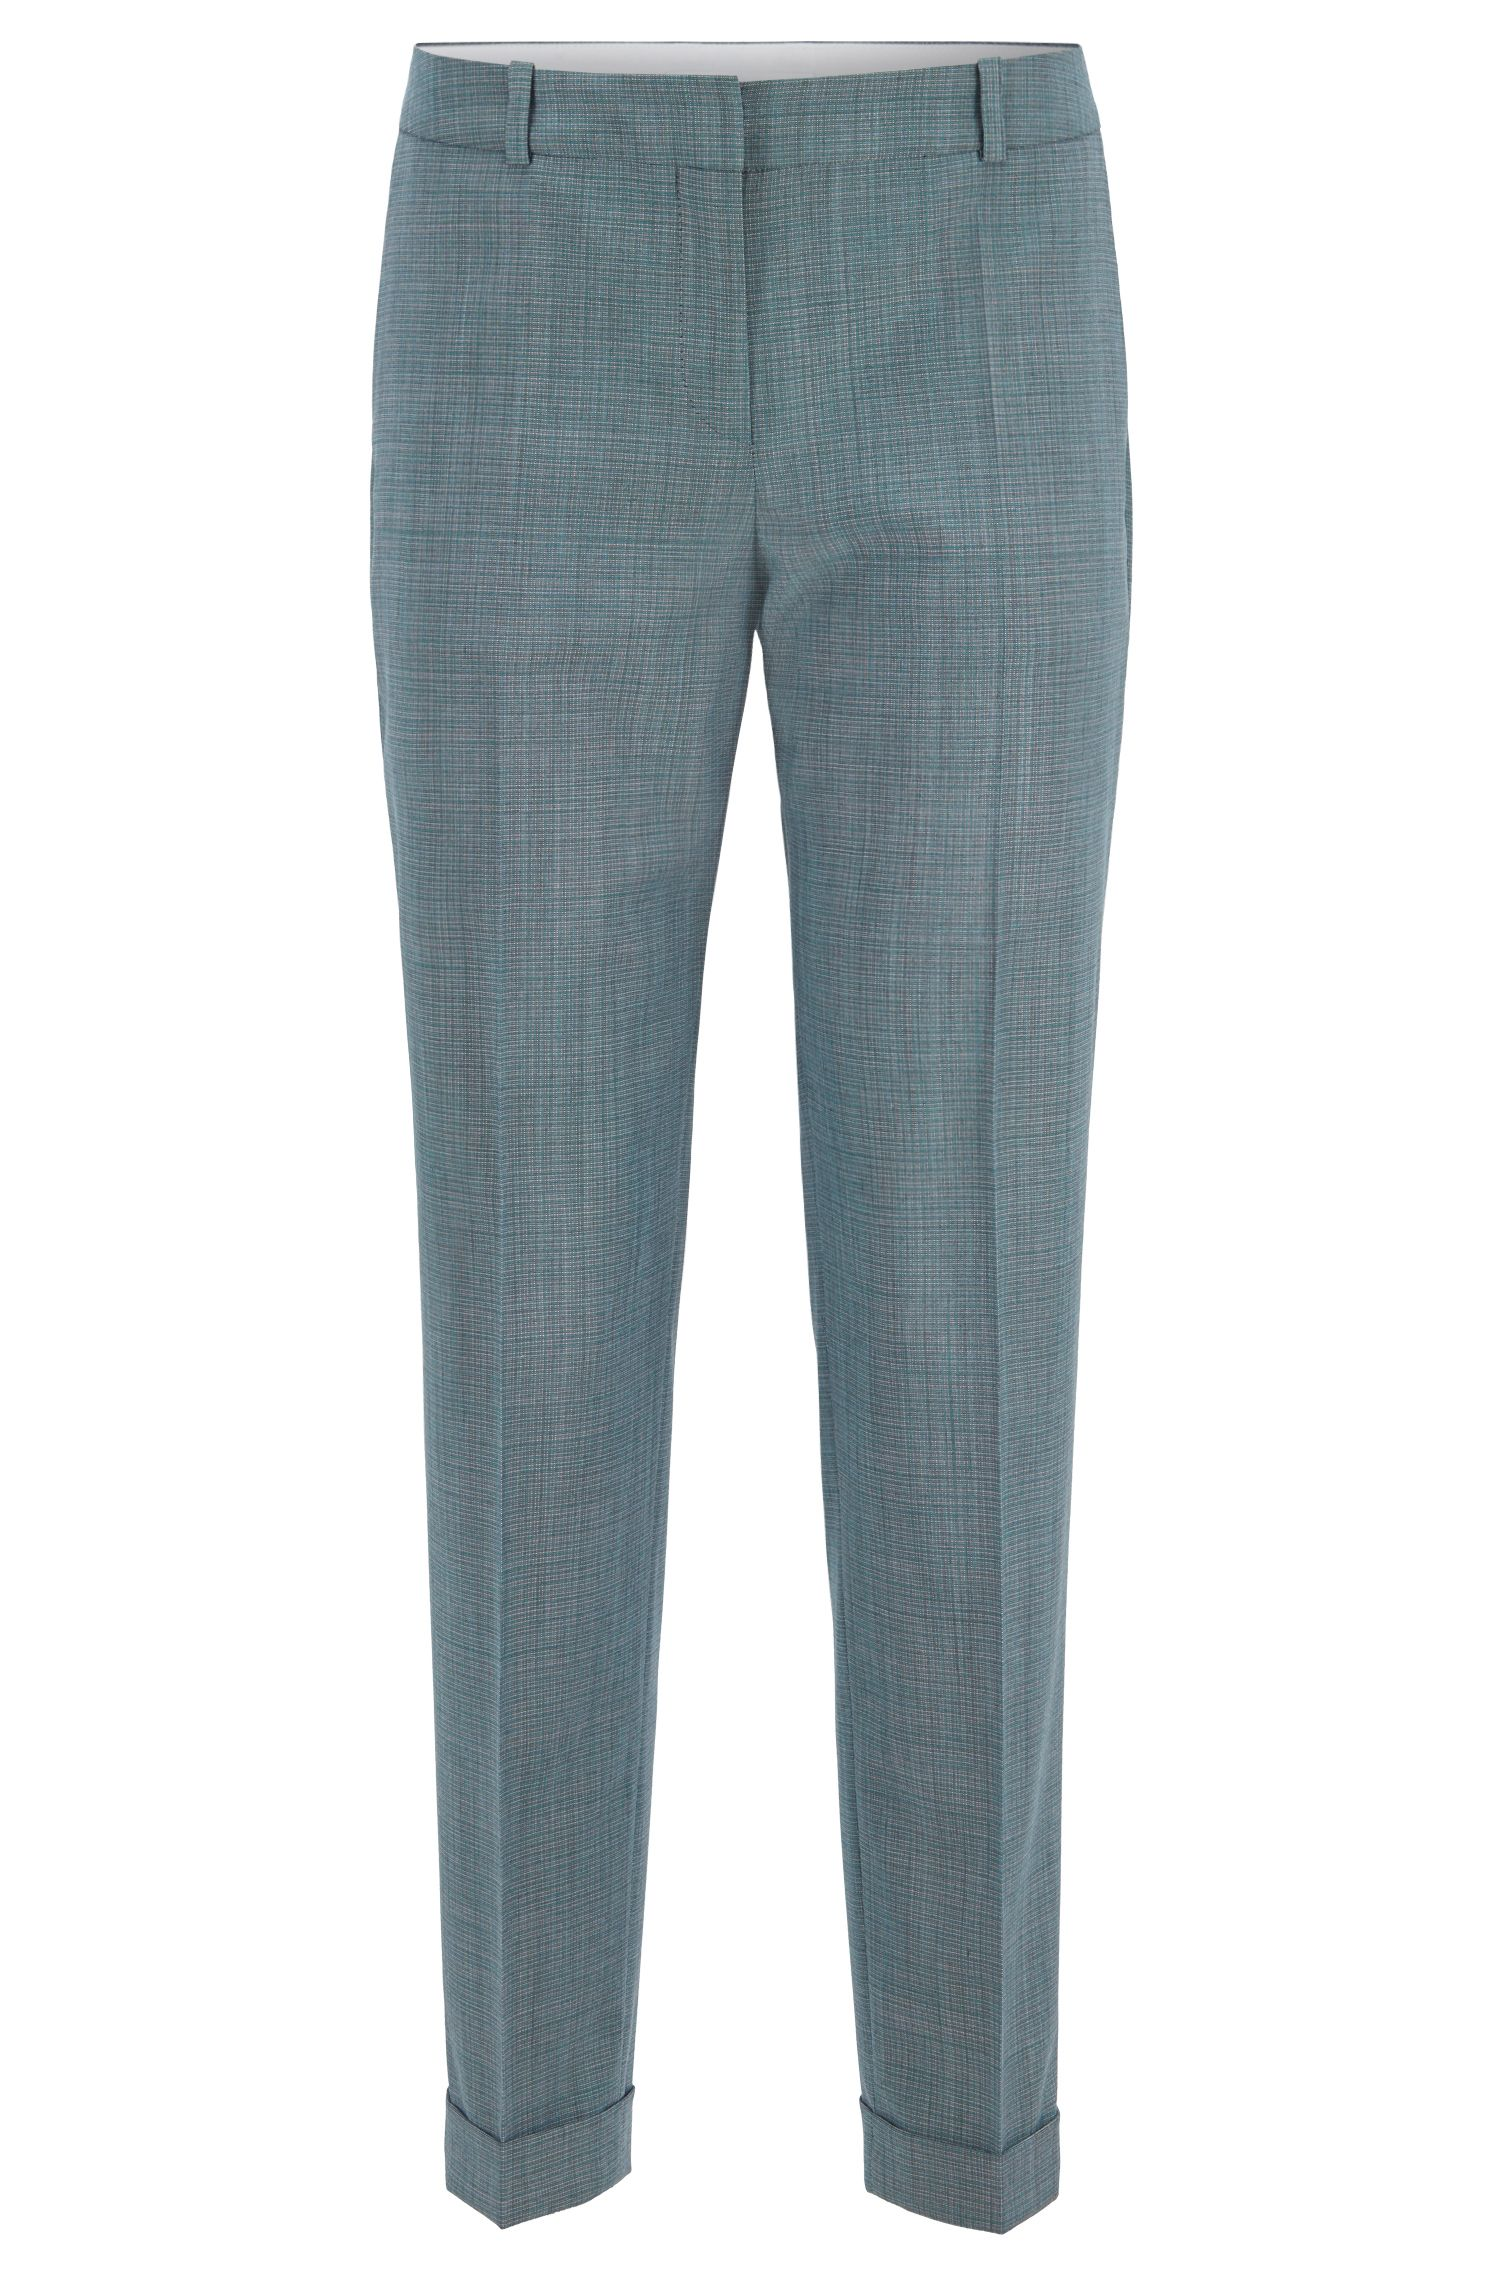 Relaxed-fit cropped pants in patterned Italian virgin wool with stretch, Patterned